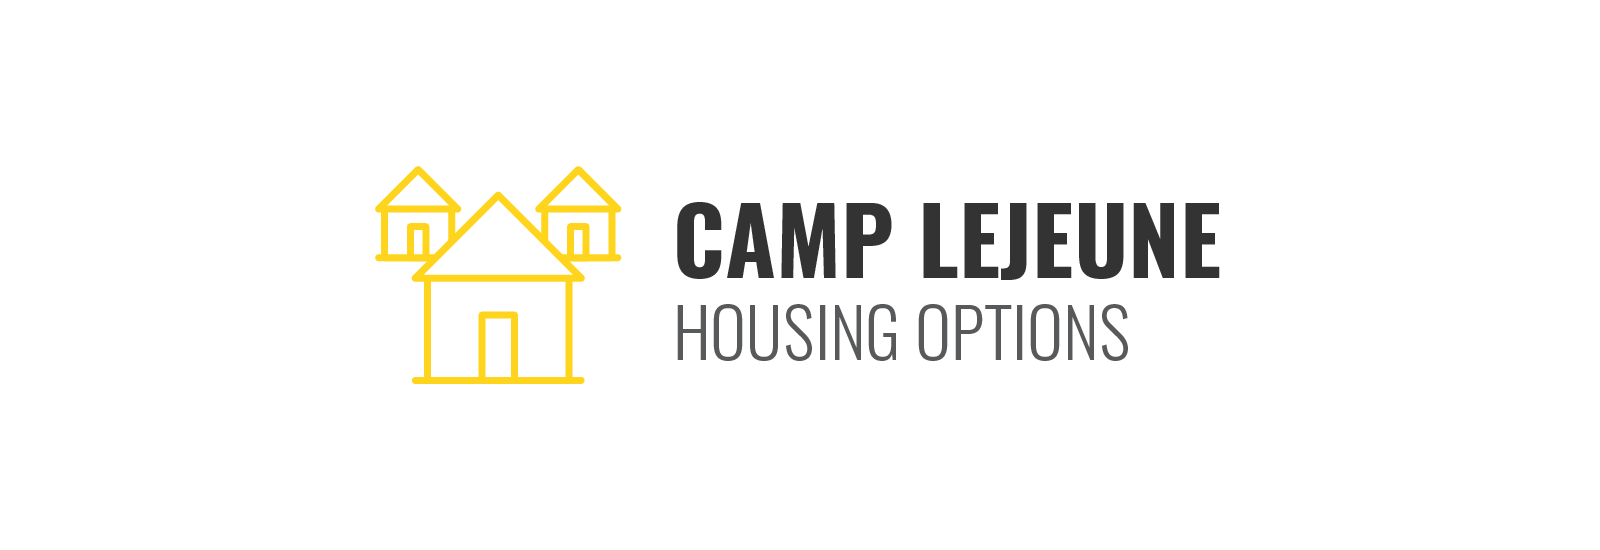 Camp Lejeune Housing Options